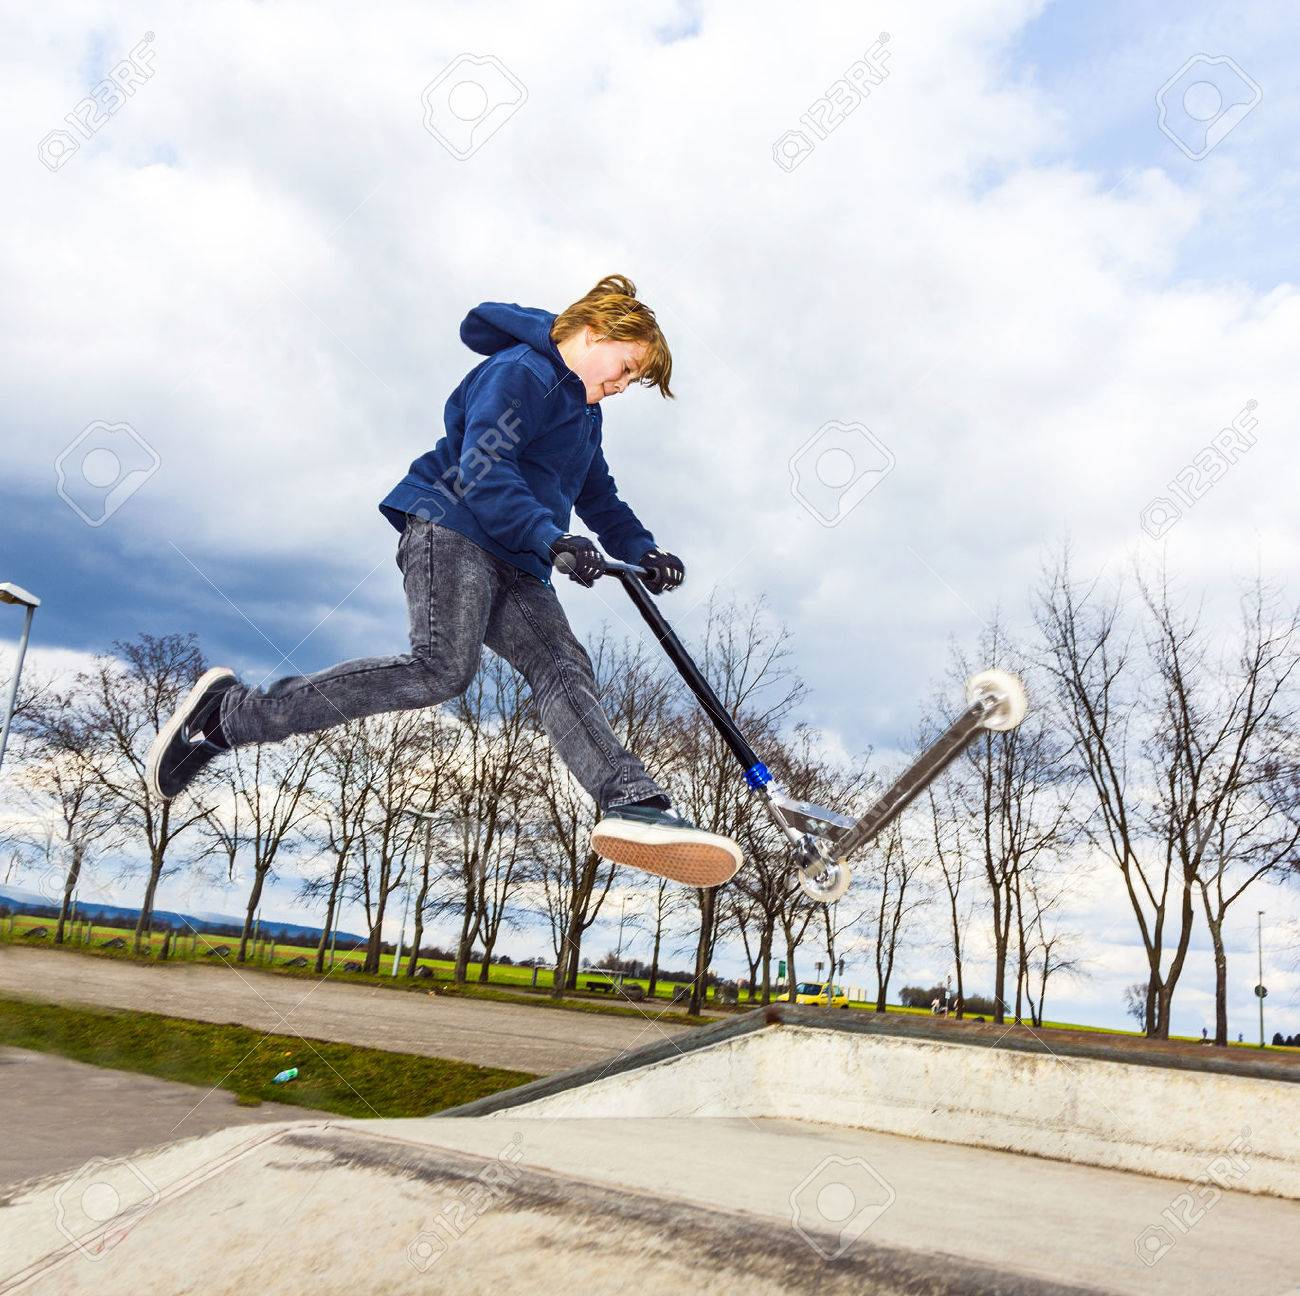 boy is going airborne witha scooter - 23698339